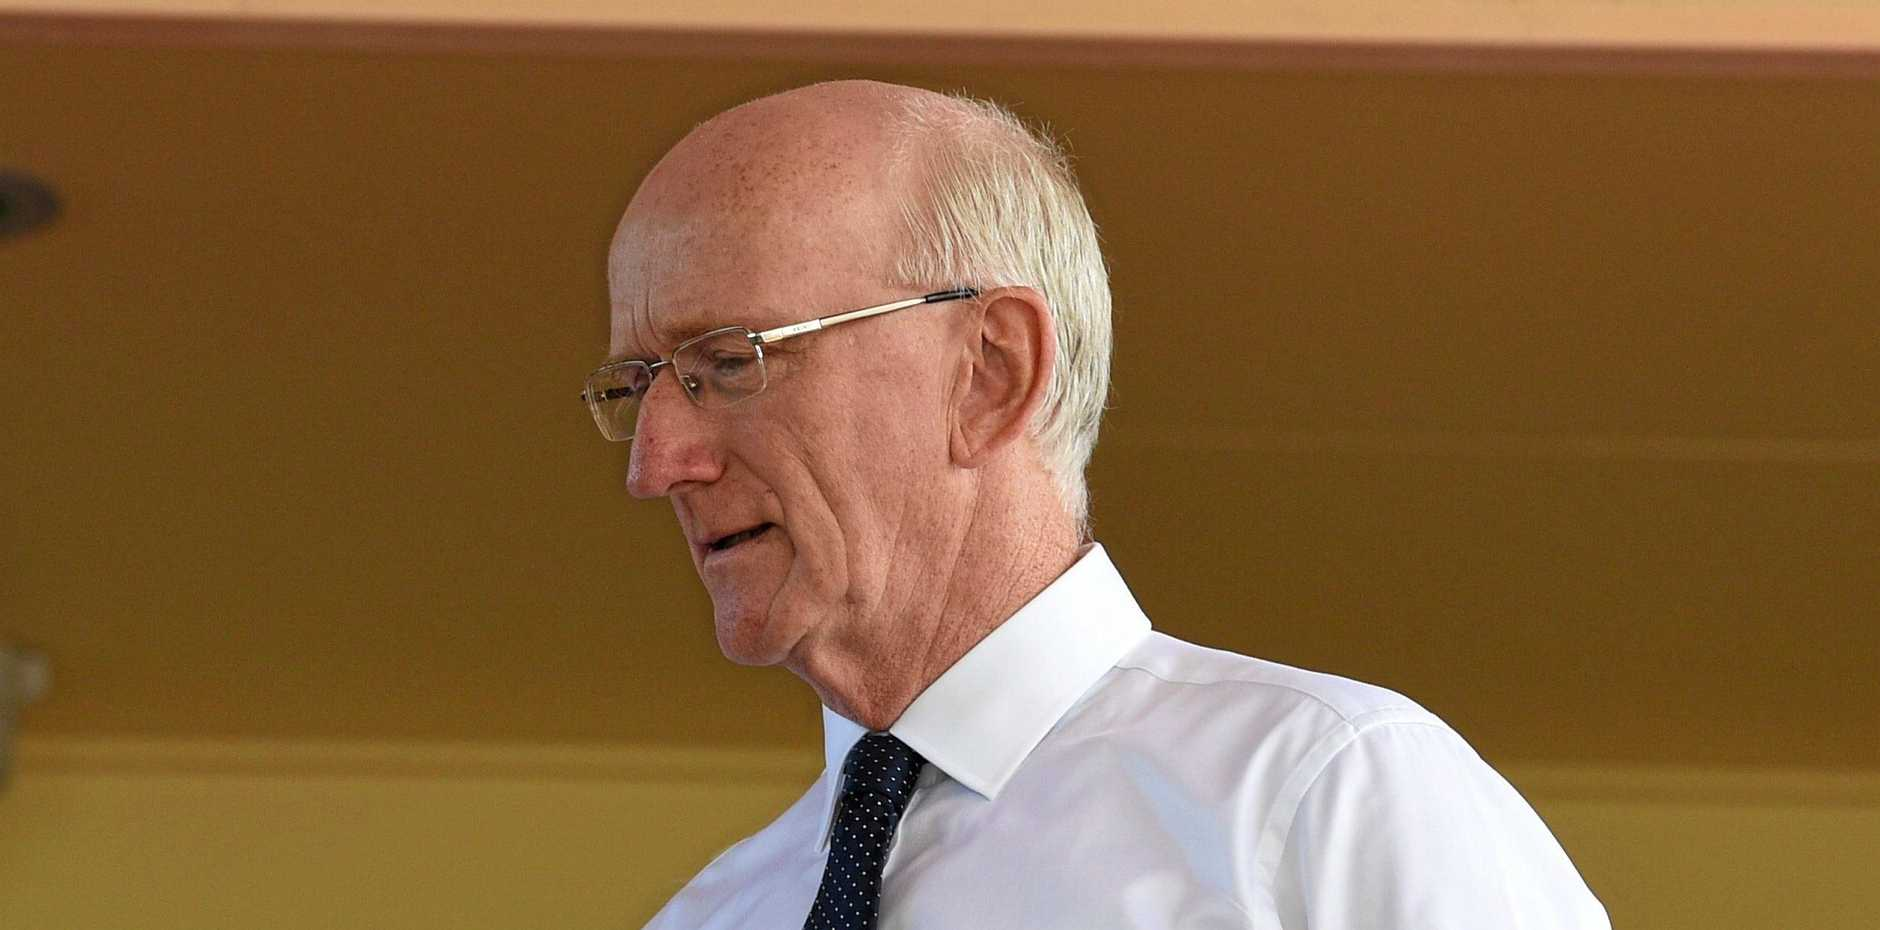 NOT AFRAID: Fraser Coast Regional Council mayor Chris Loft remains defiant after his first court appearance.